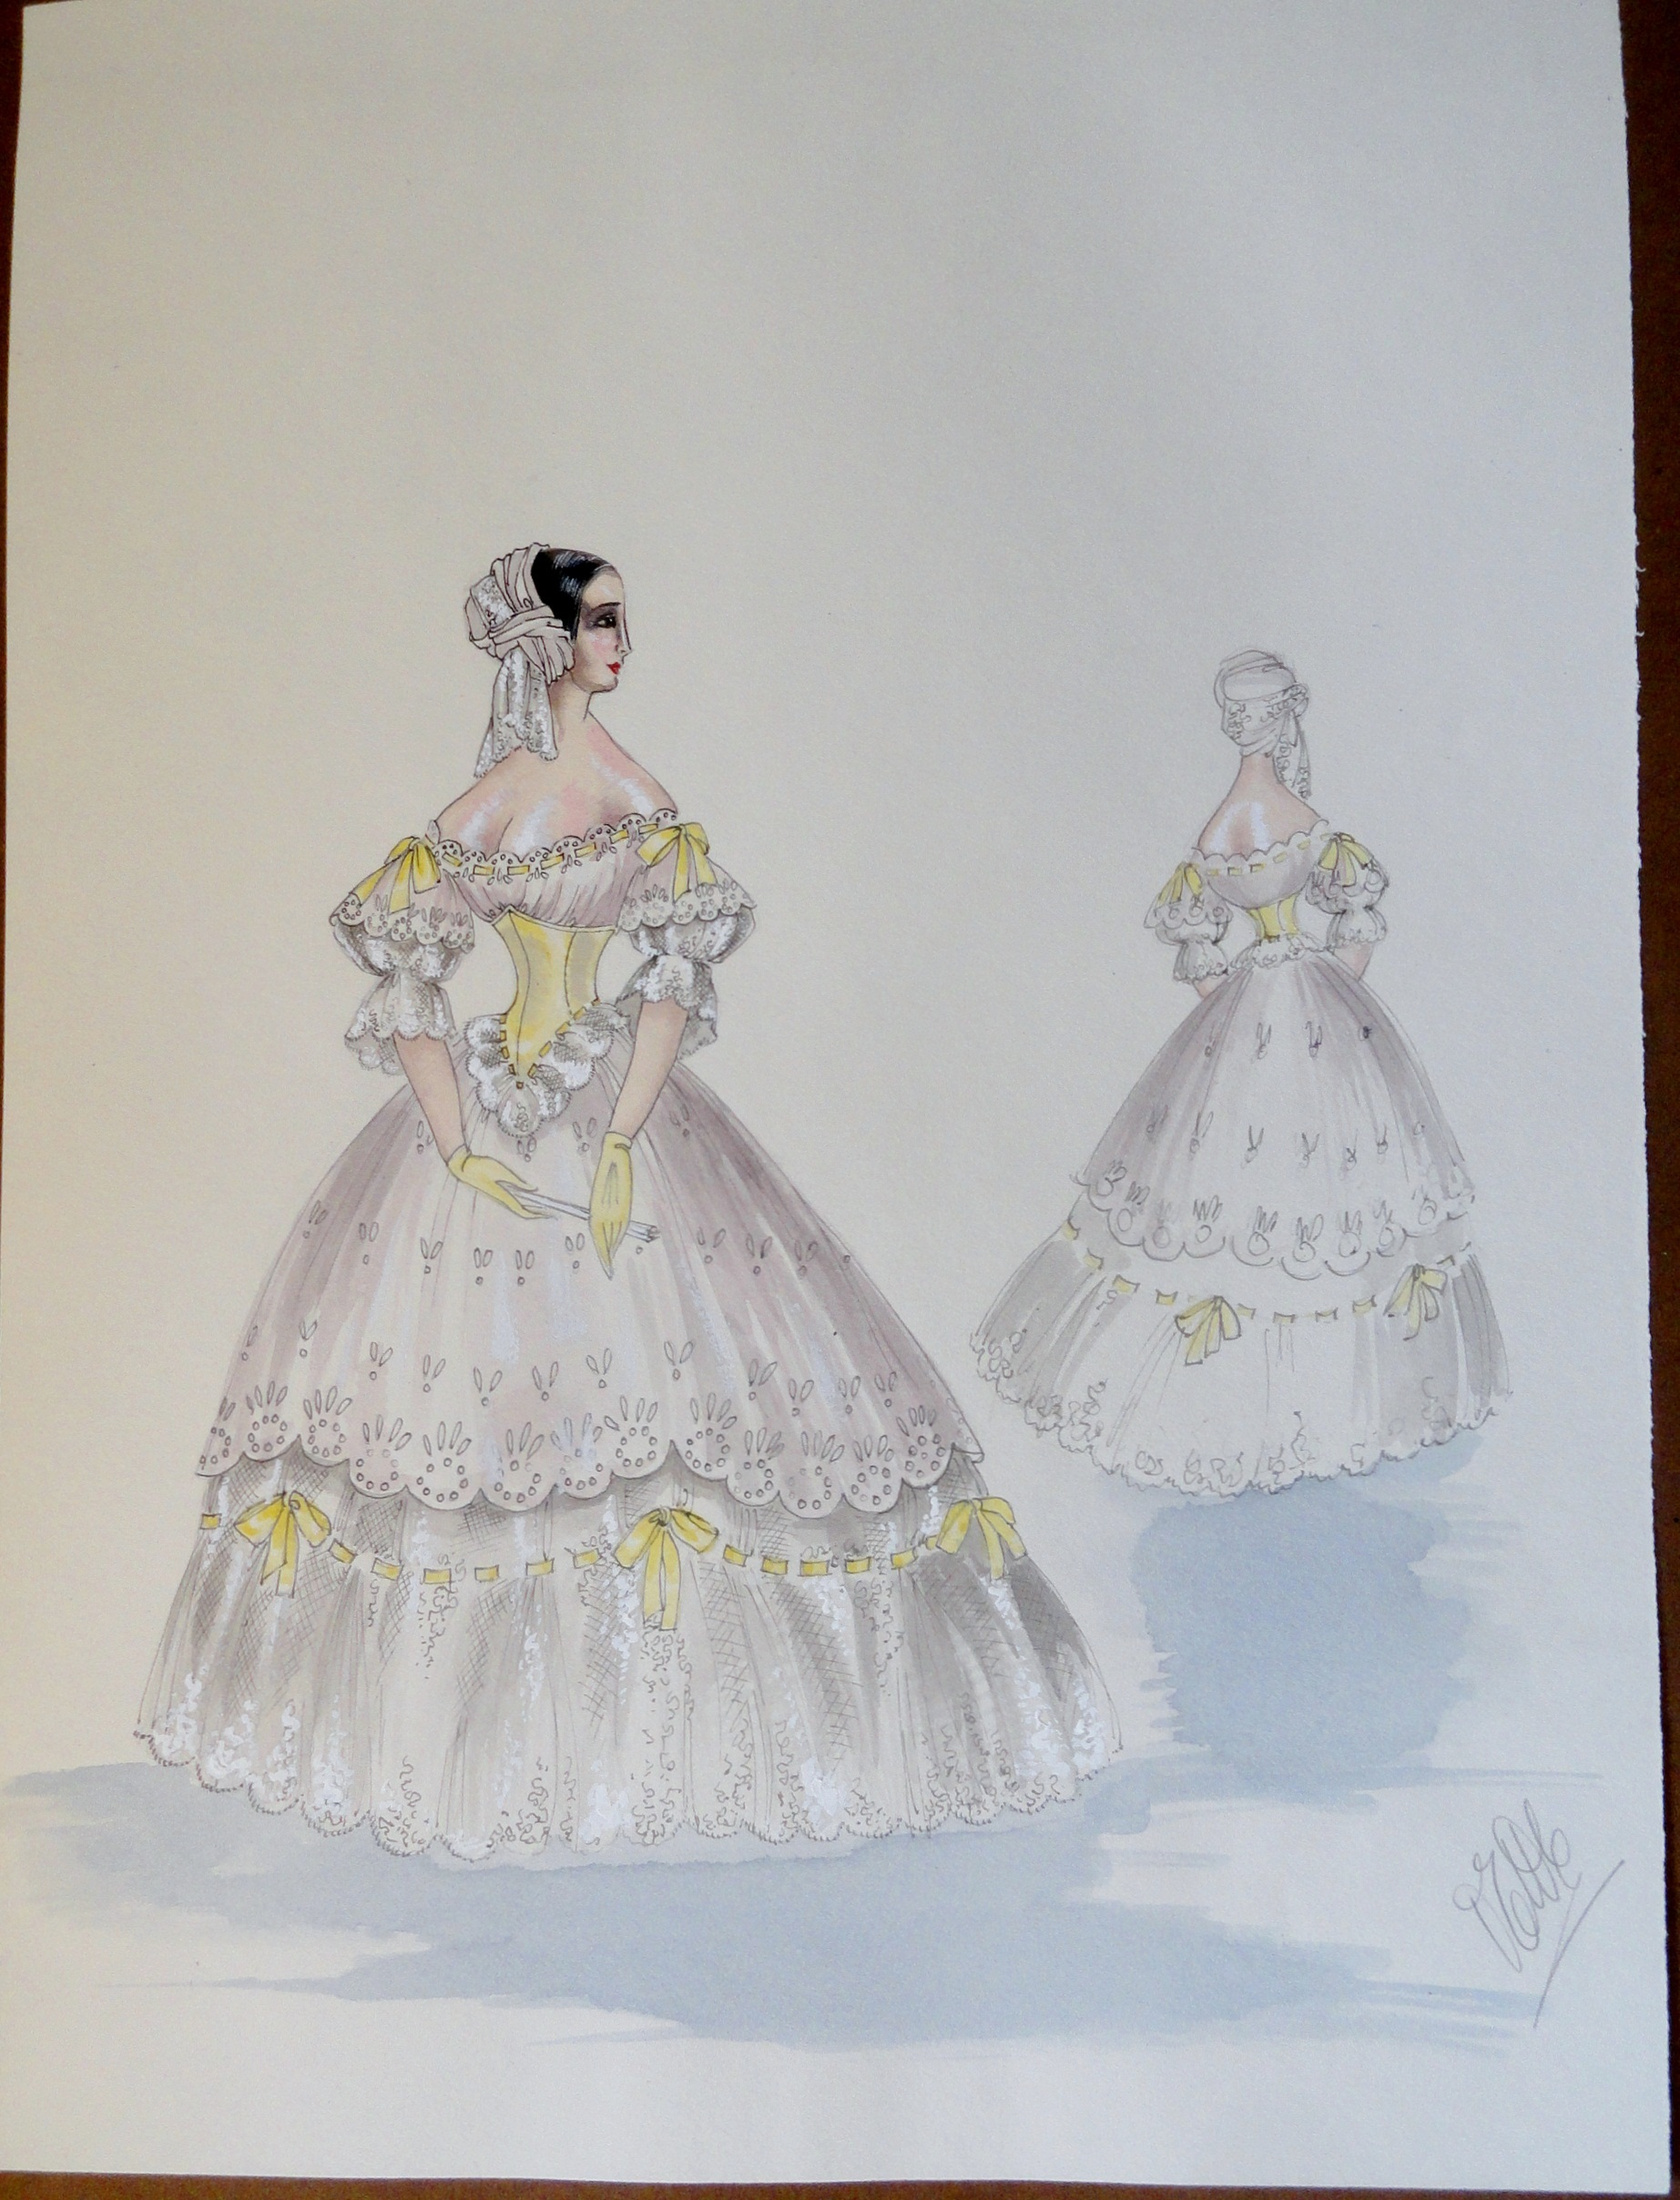 Rachel in white gown yellow accents. Pen and ink and watercolor. Signed.  From the Rachel Portfolio by Owen Hyde Clark. $300.00